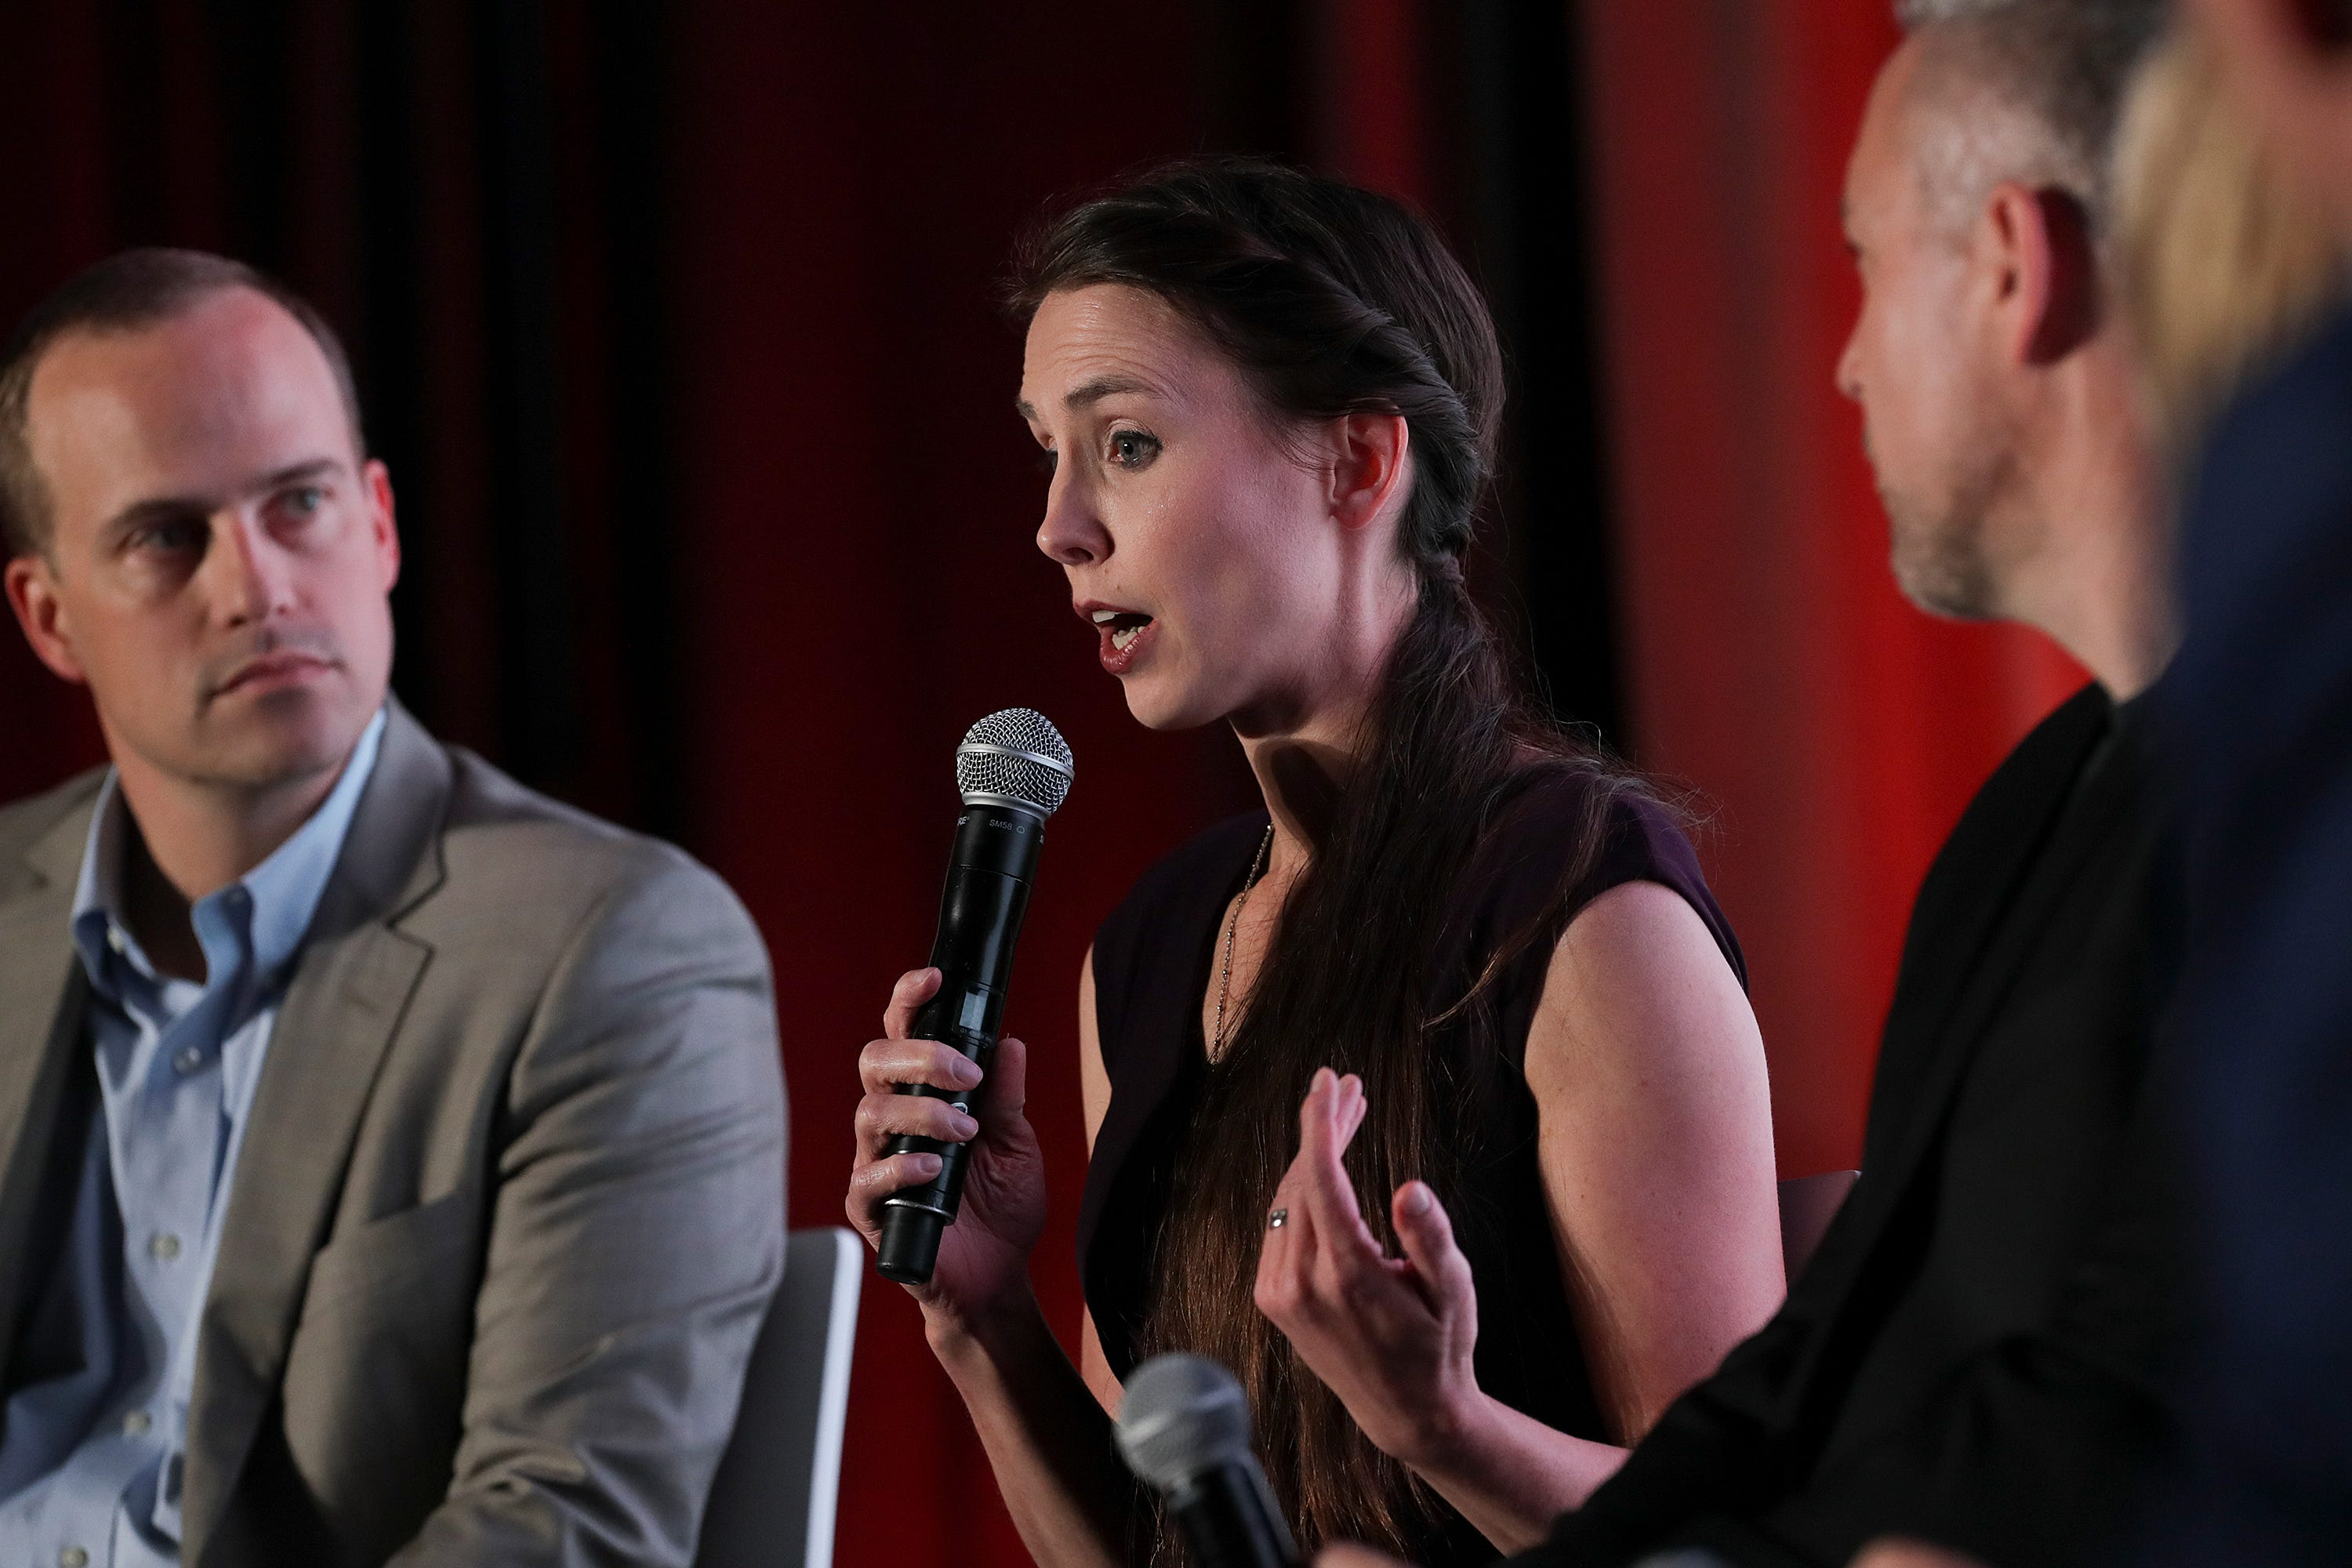 Rachael Denhollander expresses her thoughts on stage with church leaders during a panel discussion at the Southern Baptist Convention in Birmingham, Alabama. June 2019